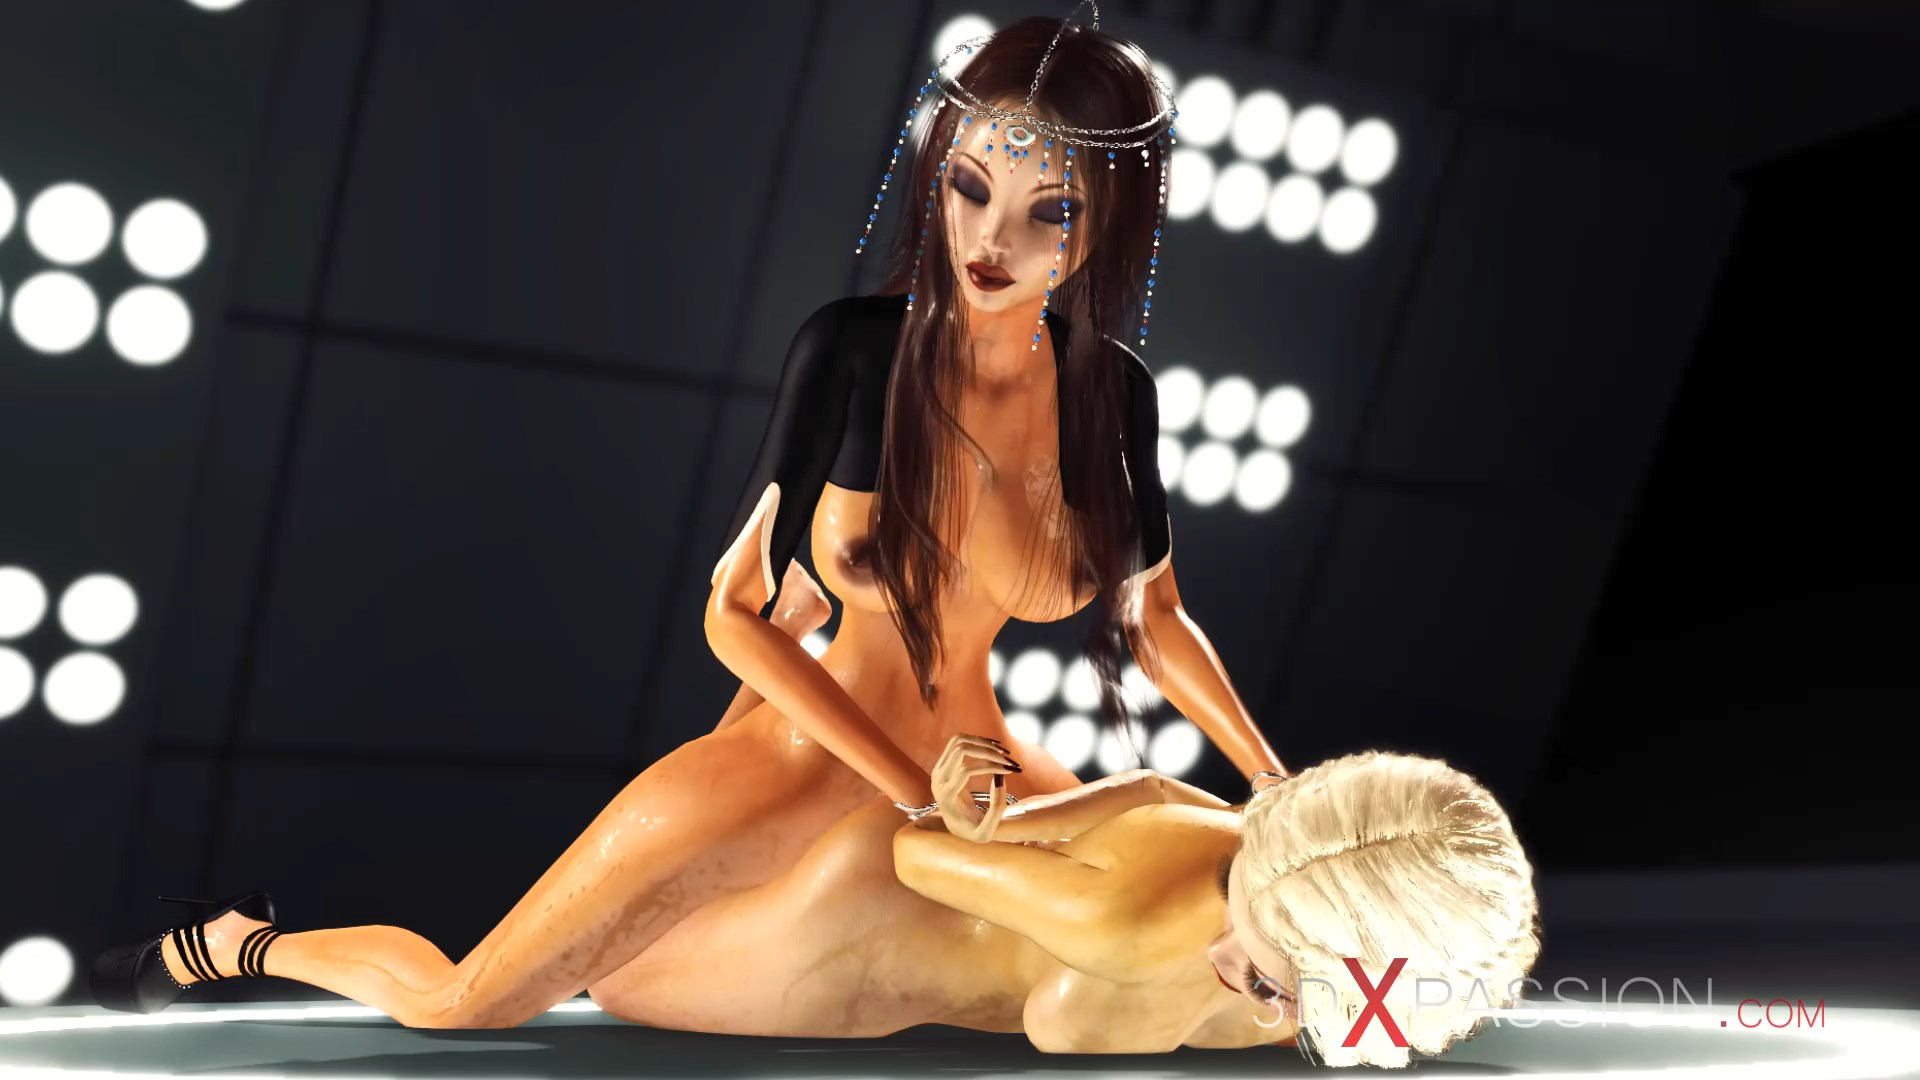 Super sexy 3d dickgirl fucjing horny blonde in space station